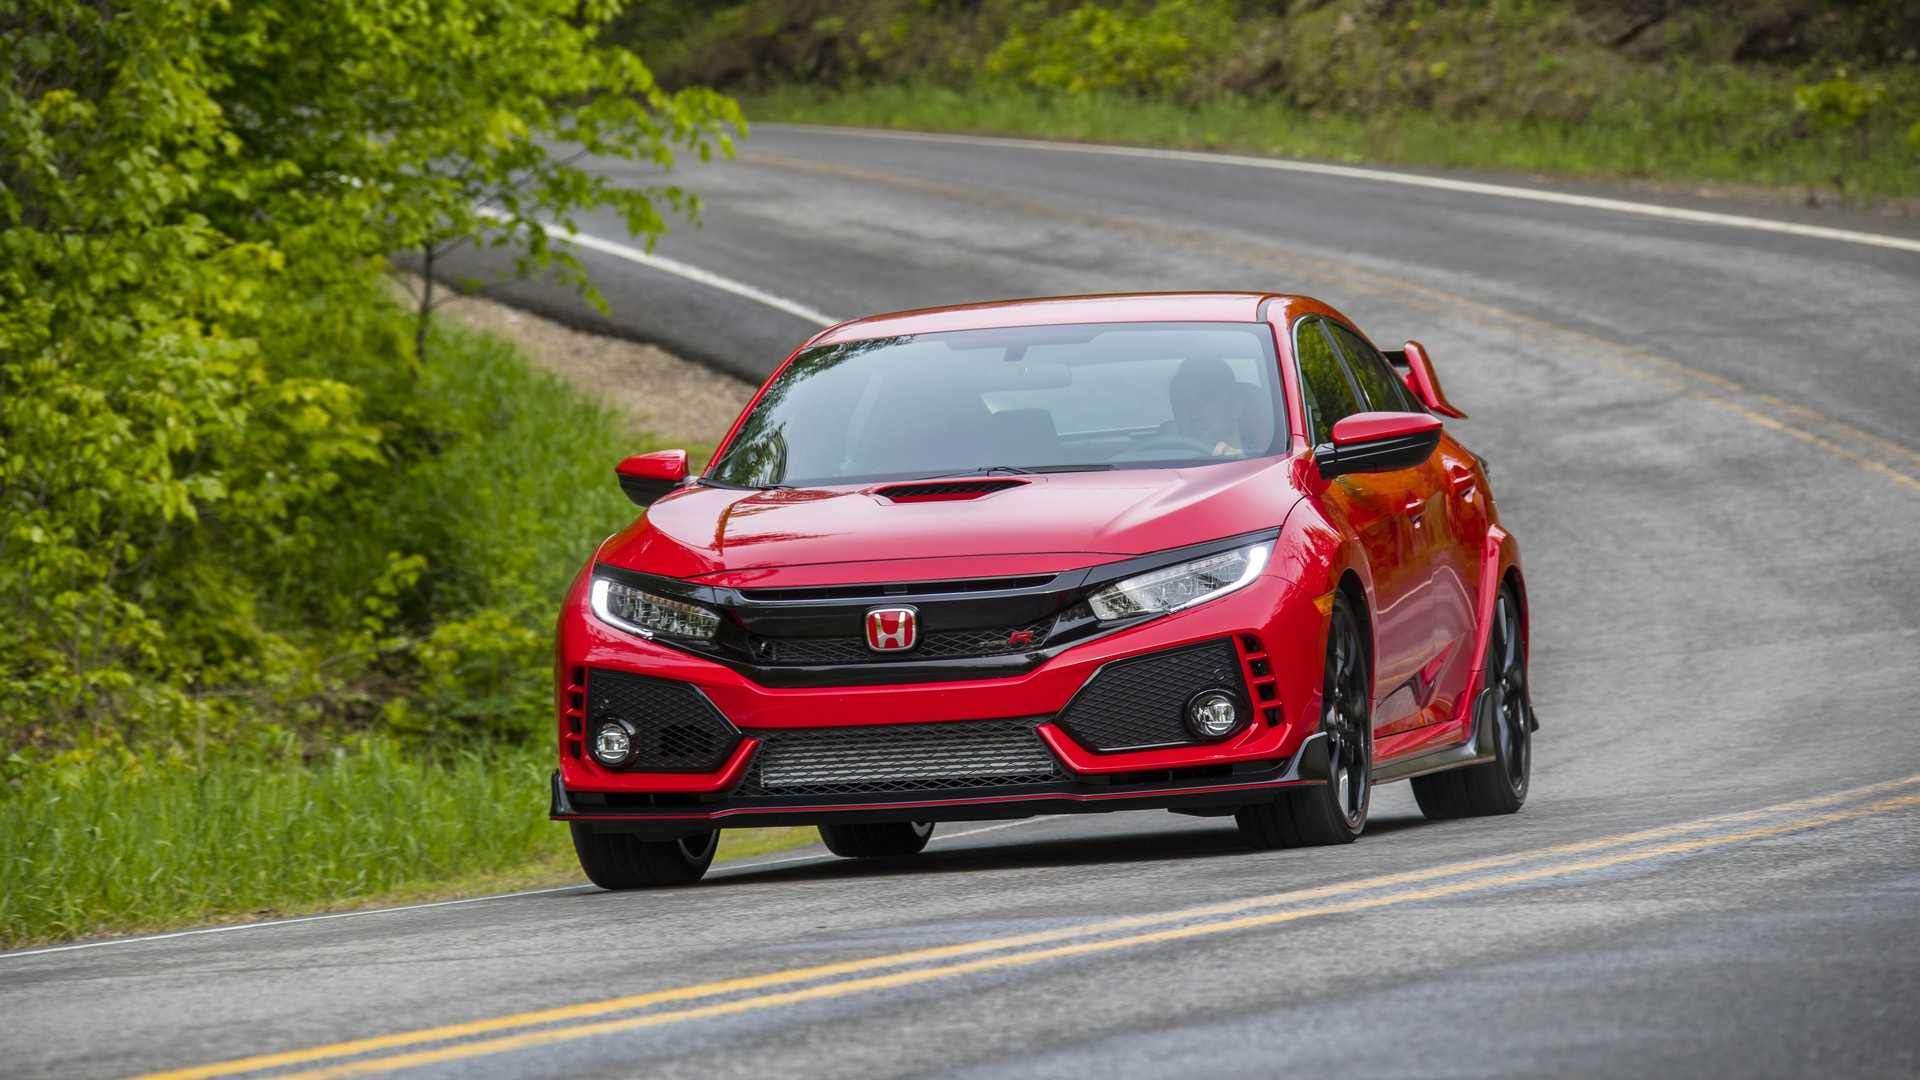 2019 Honda Civic Type R (Color: Rallye Red) Front Three-Quarter Wallpapers (2)